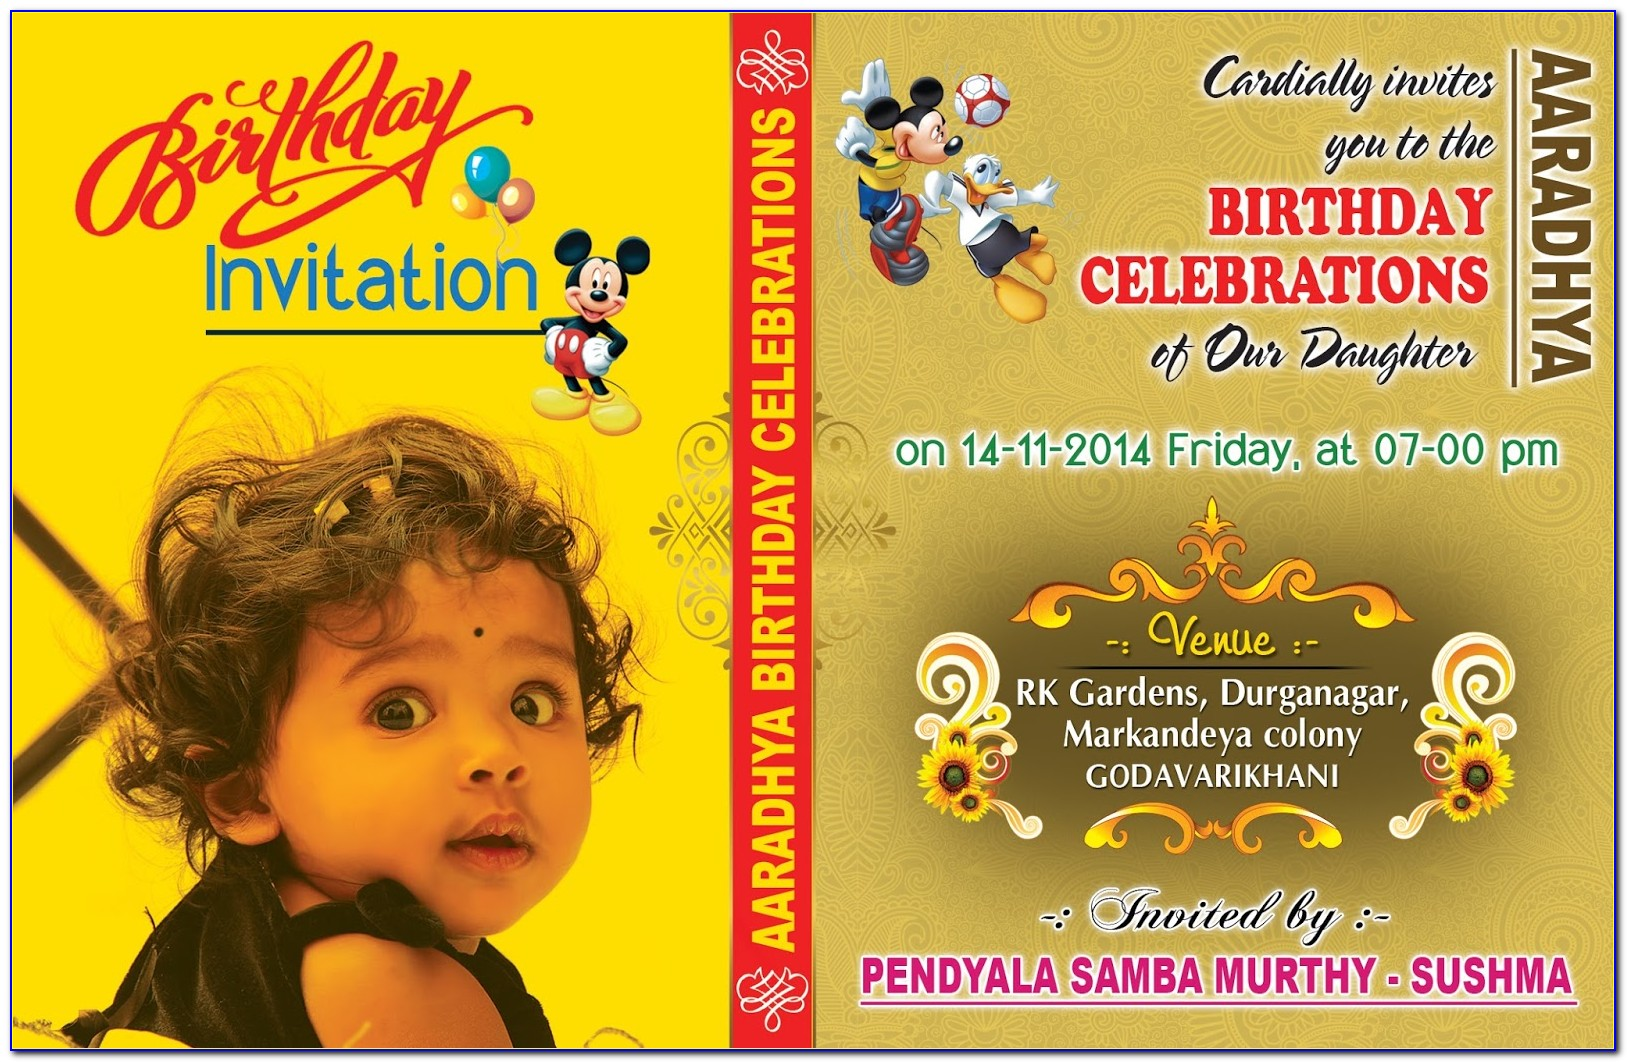 Sofia The First Birthday Invitation Card Template Free Download